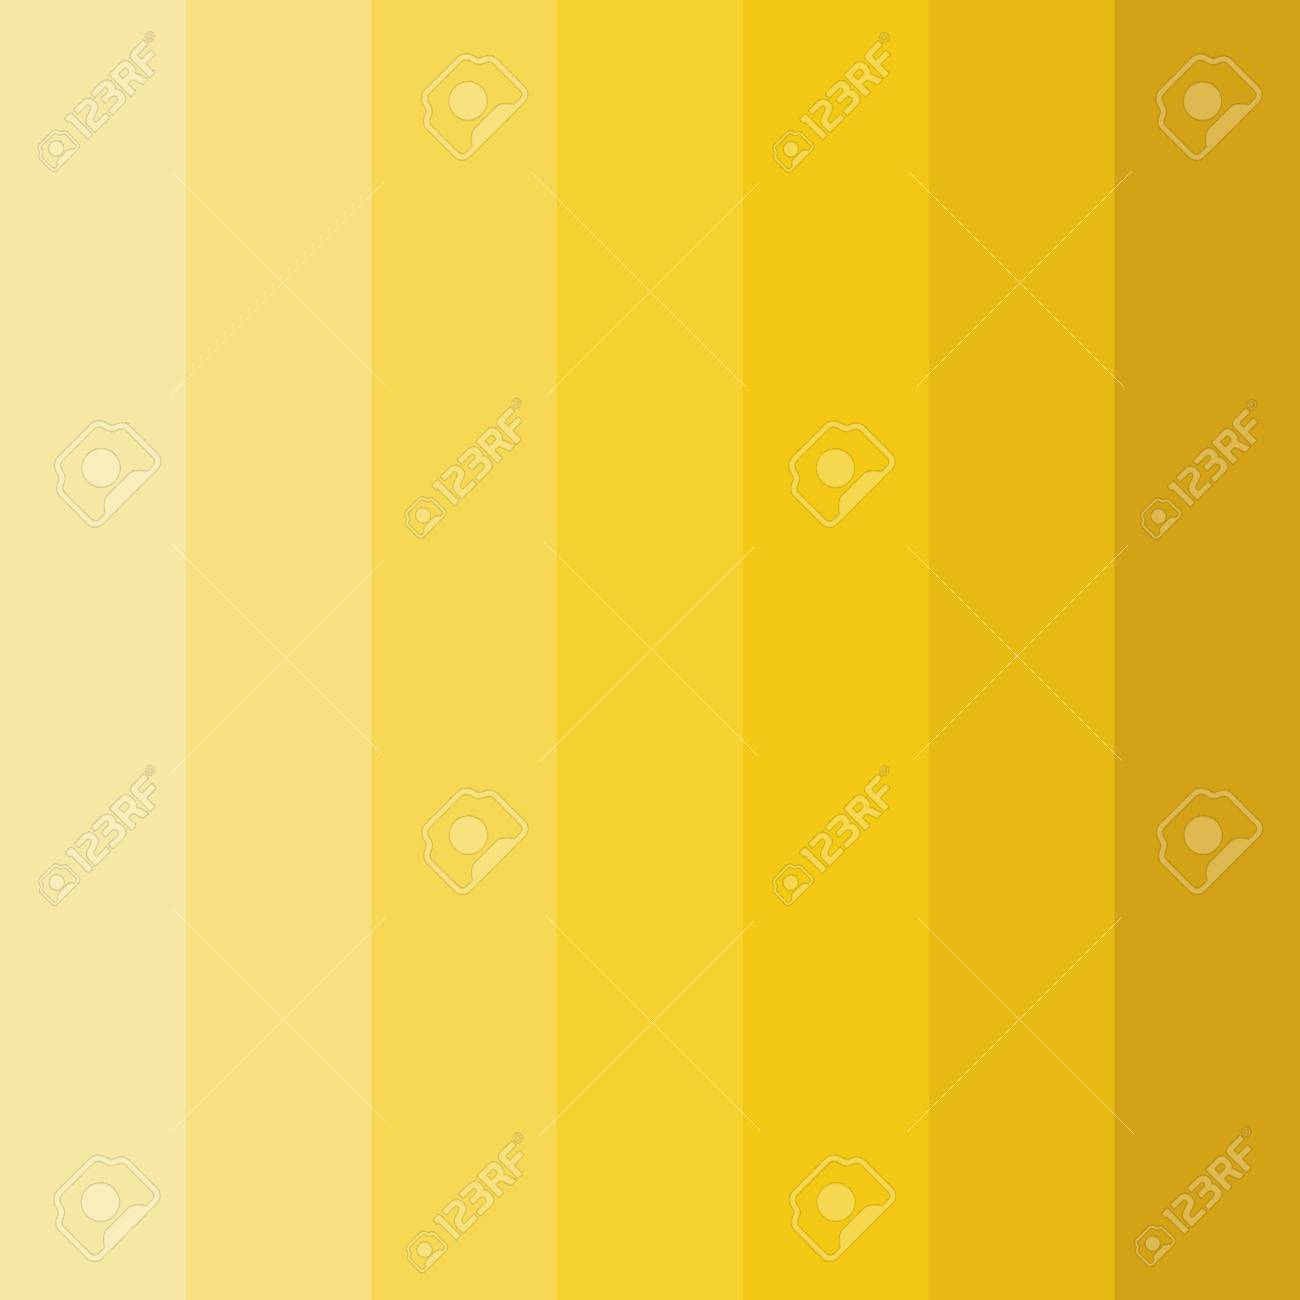 Abstract Conceptual Background Of Rectangles In Different Shades Royalty Free Cliparts Vectors And Stock Illustration Image 82272974